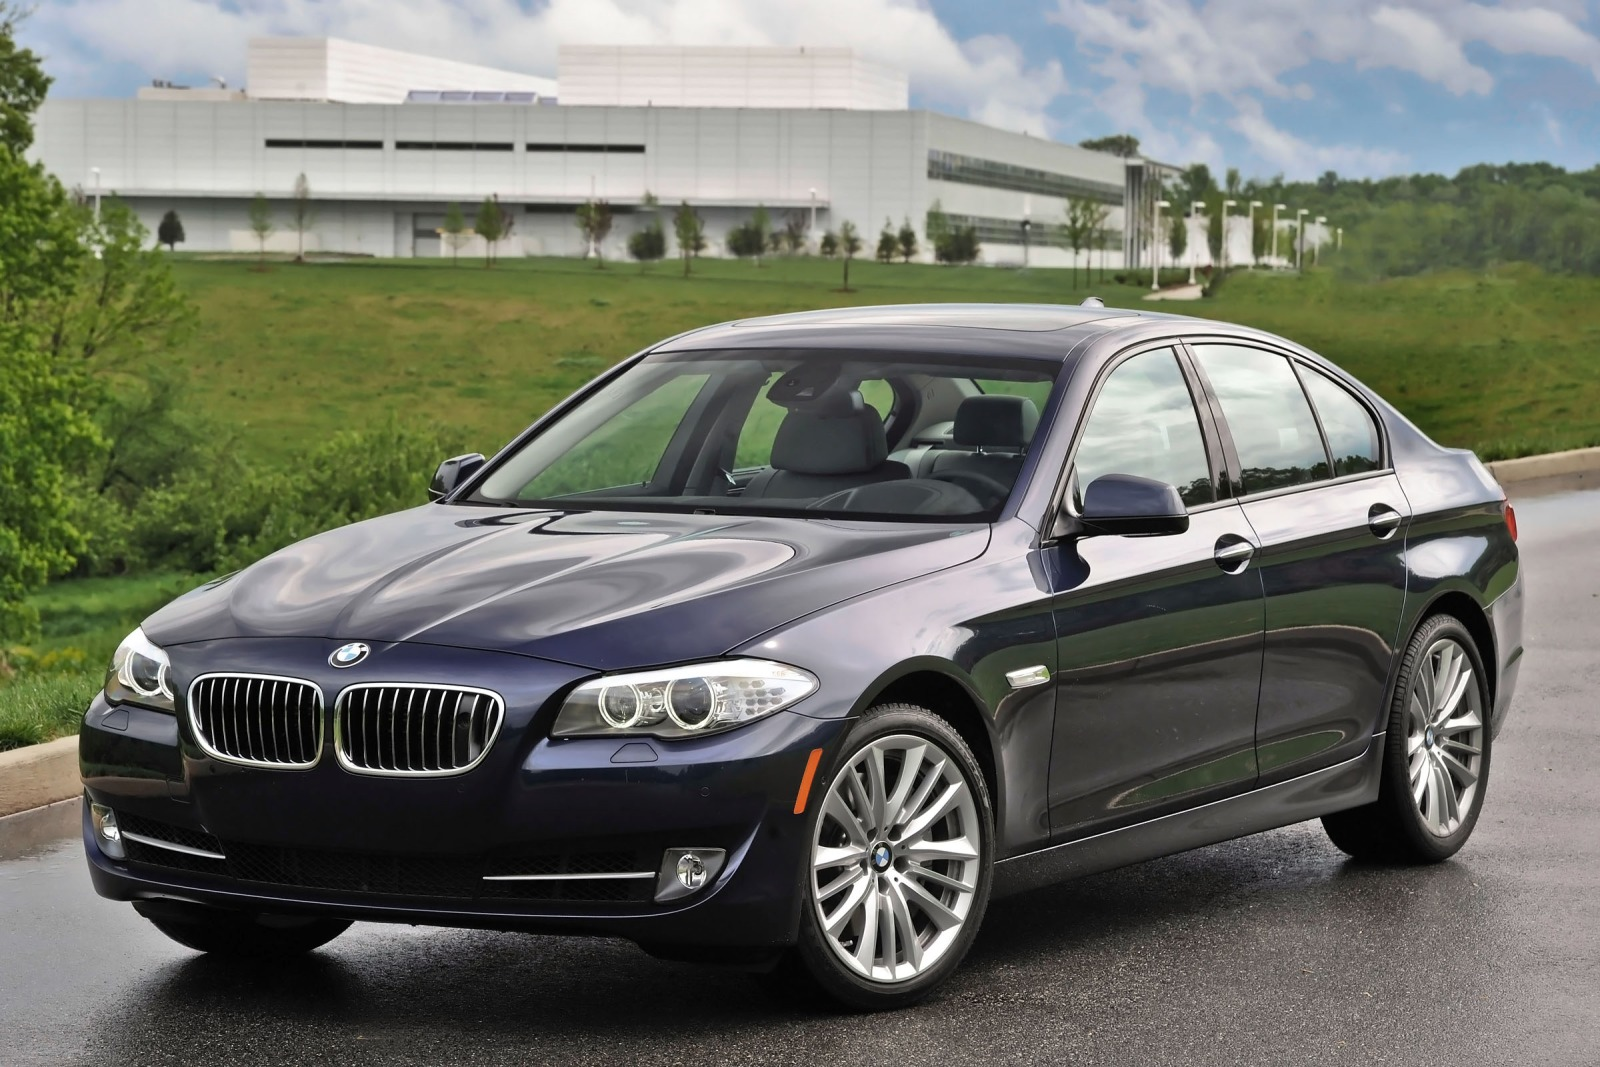 2012 BMW 5 Series  Information and photos  ZombieDrive